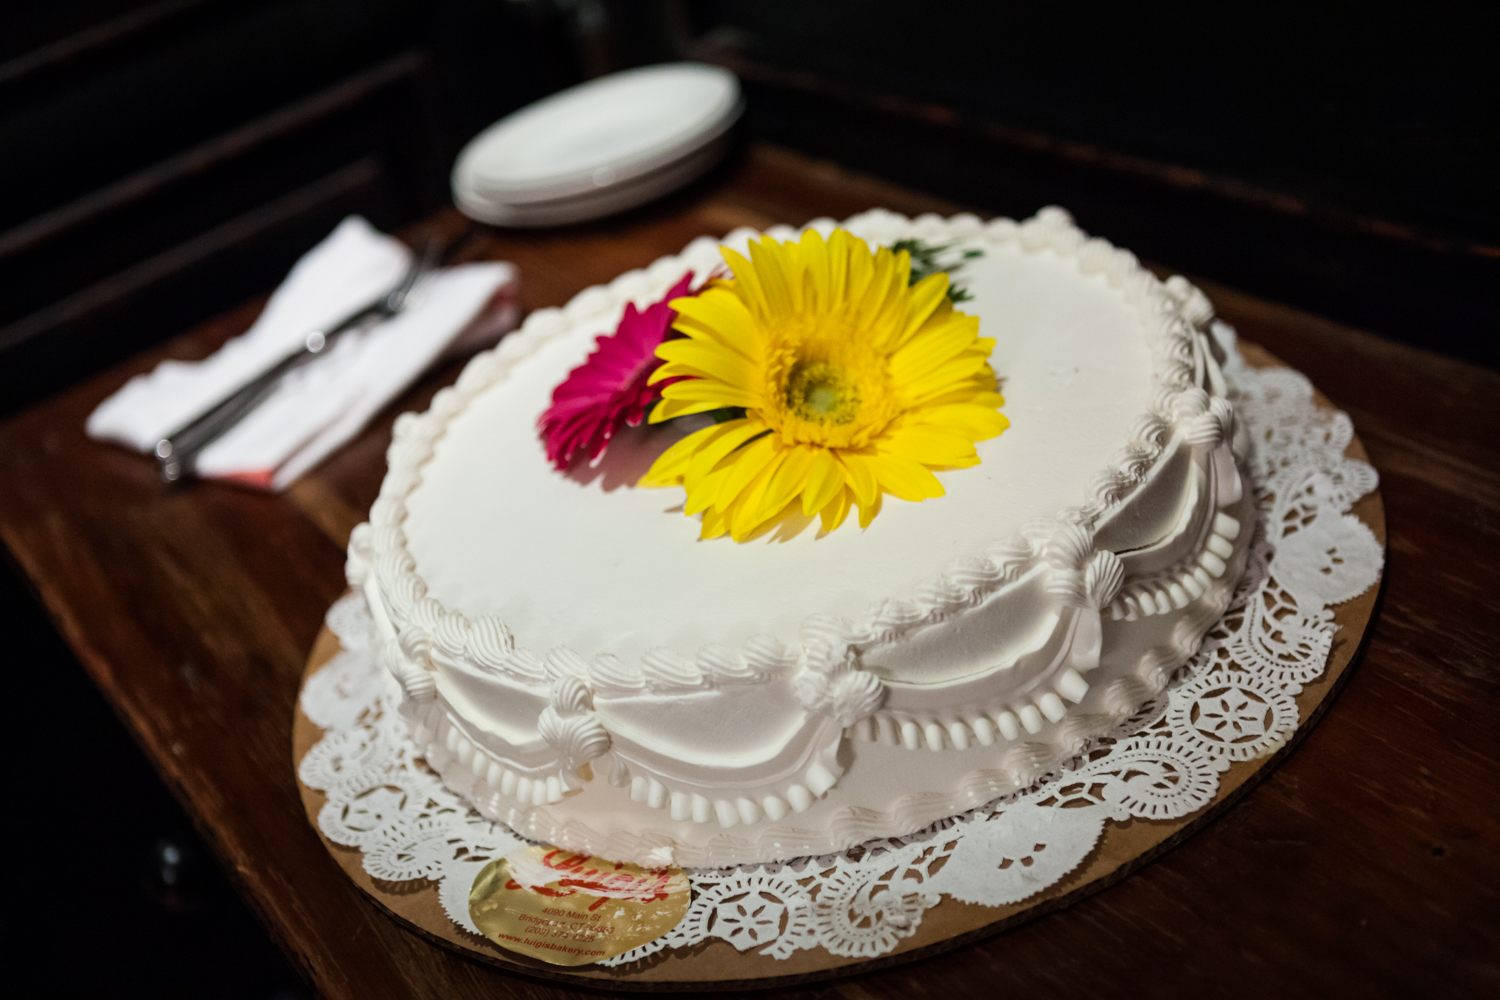 Close up on one-layer wedding cake with flowers on top